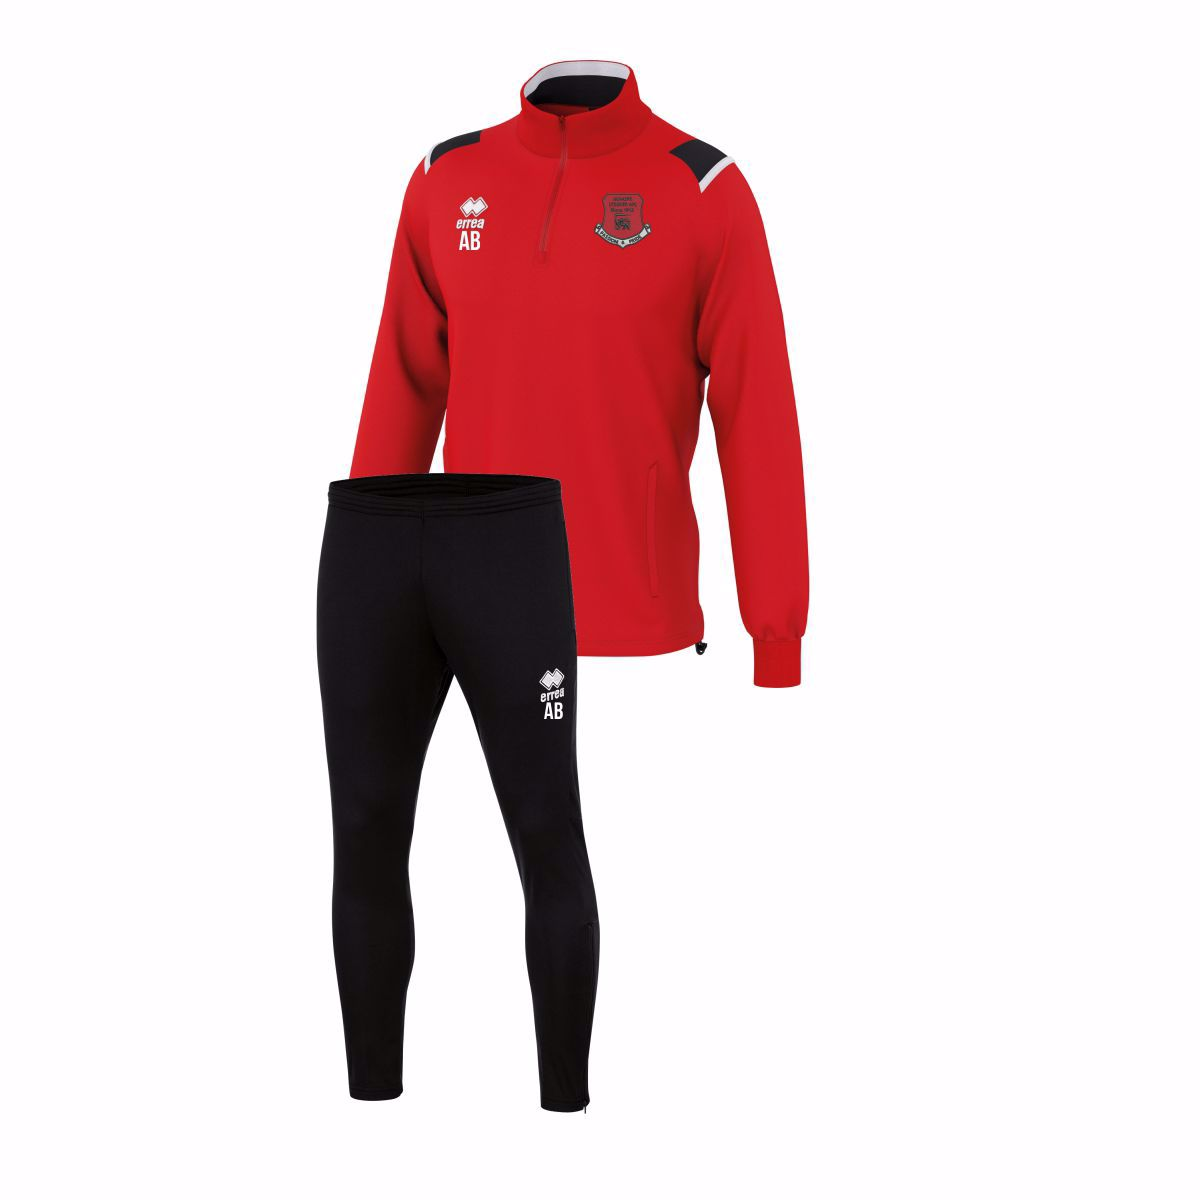 BISHOPS LYDEARDS FC TRACKSUIT - Adult